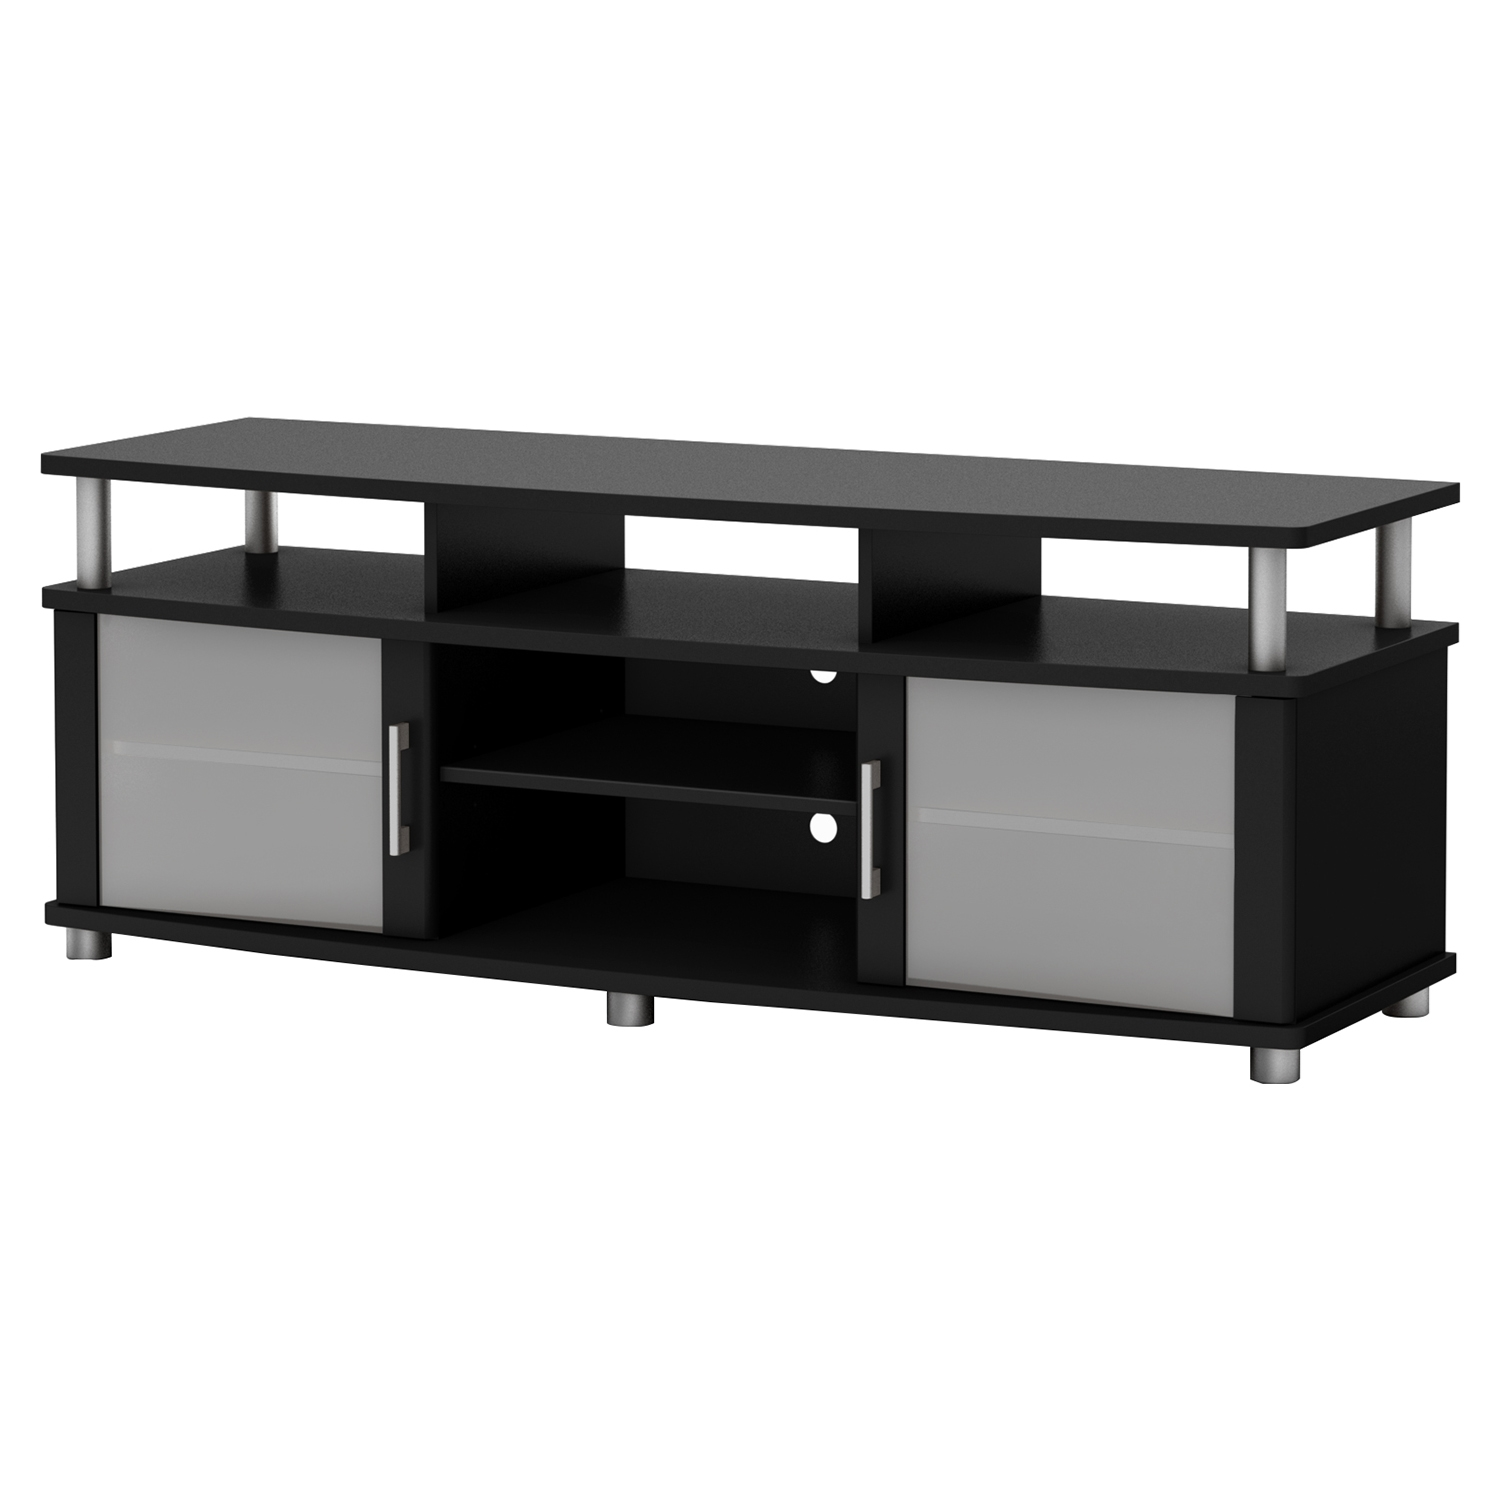 City Life TV Stand - Pure Black